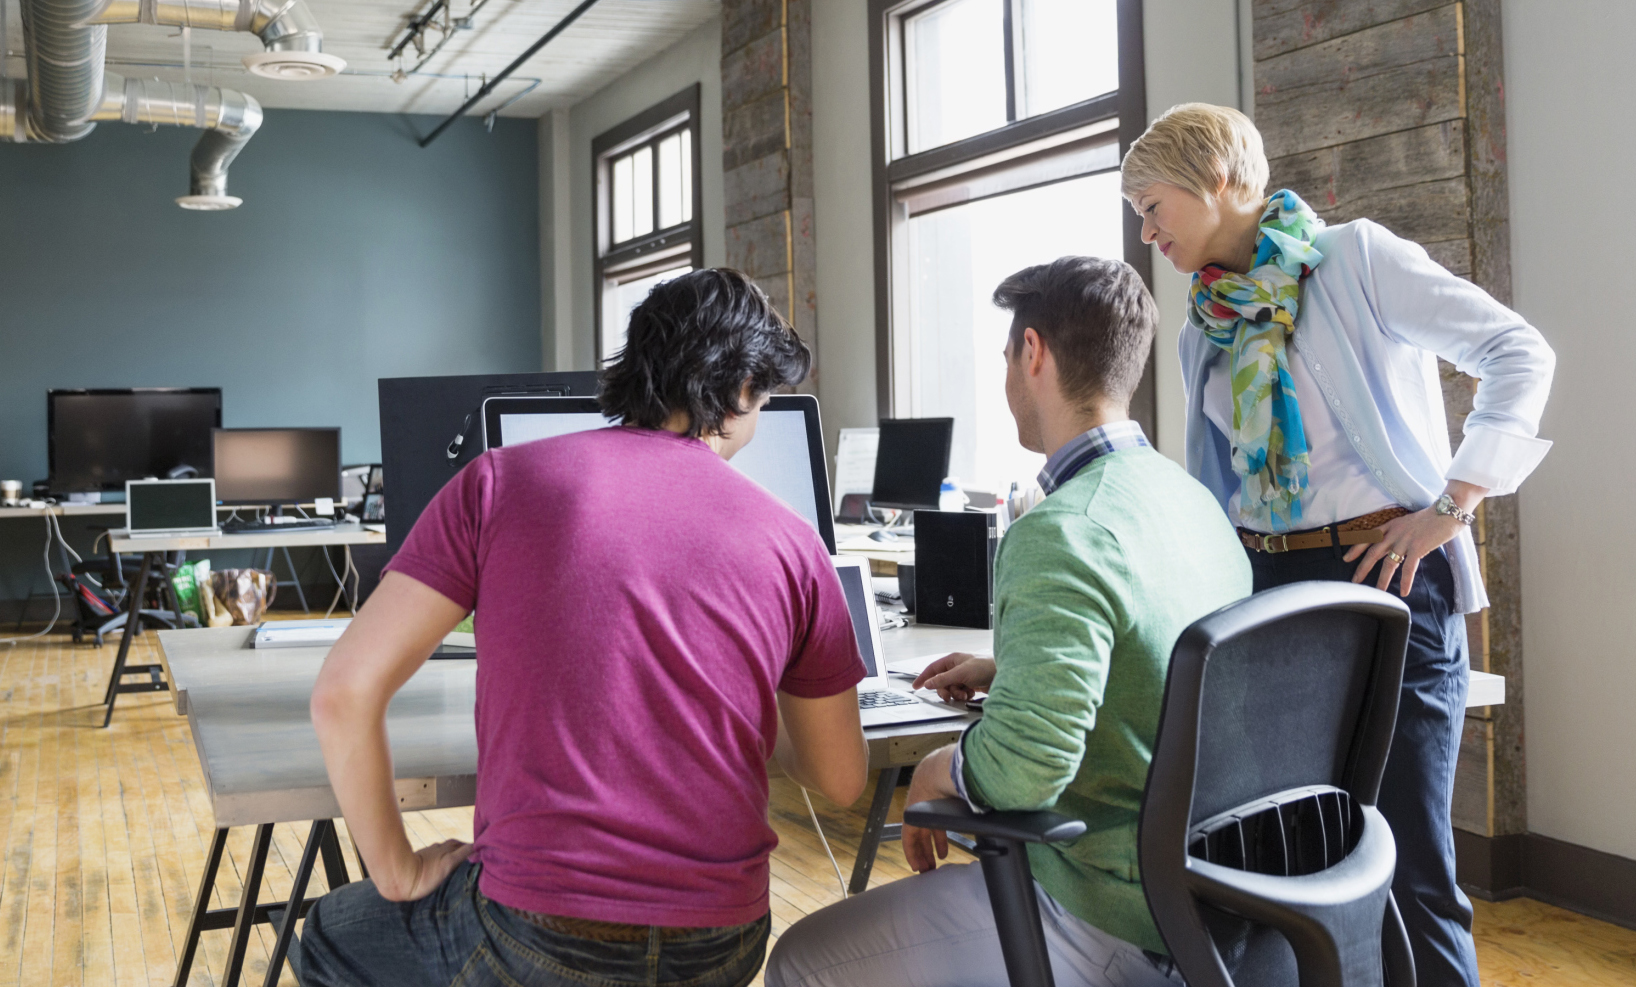 Entrepreneurs working in creative office space